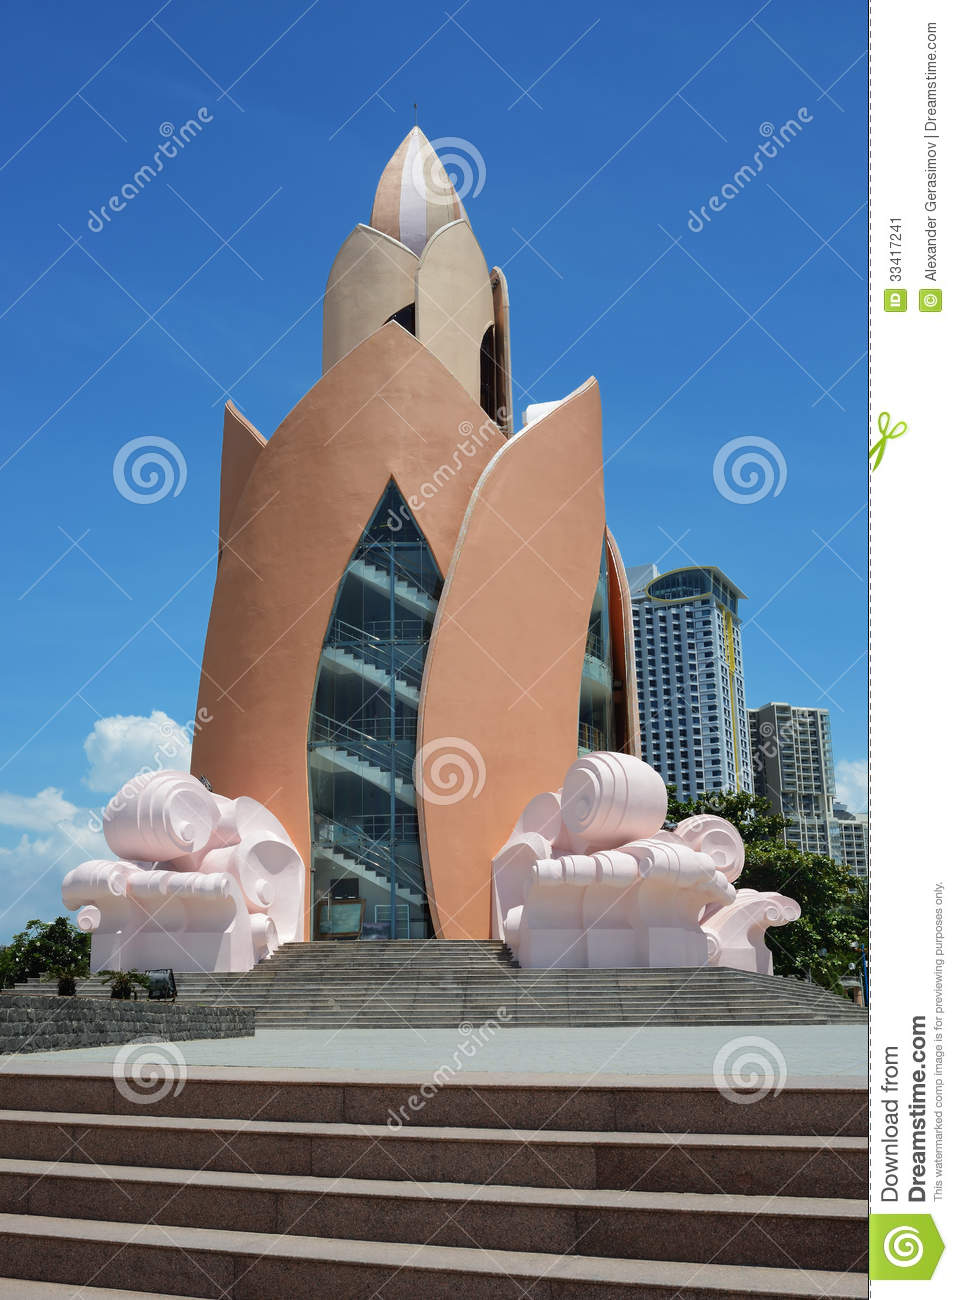 Tram huong lotus flower tower in nha trang stock image image of download comp izmirmasajfo